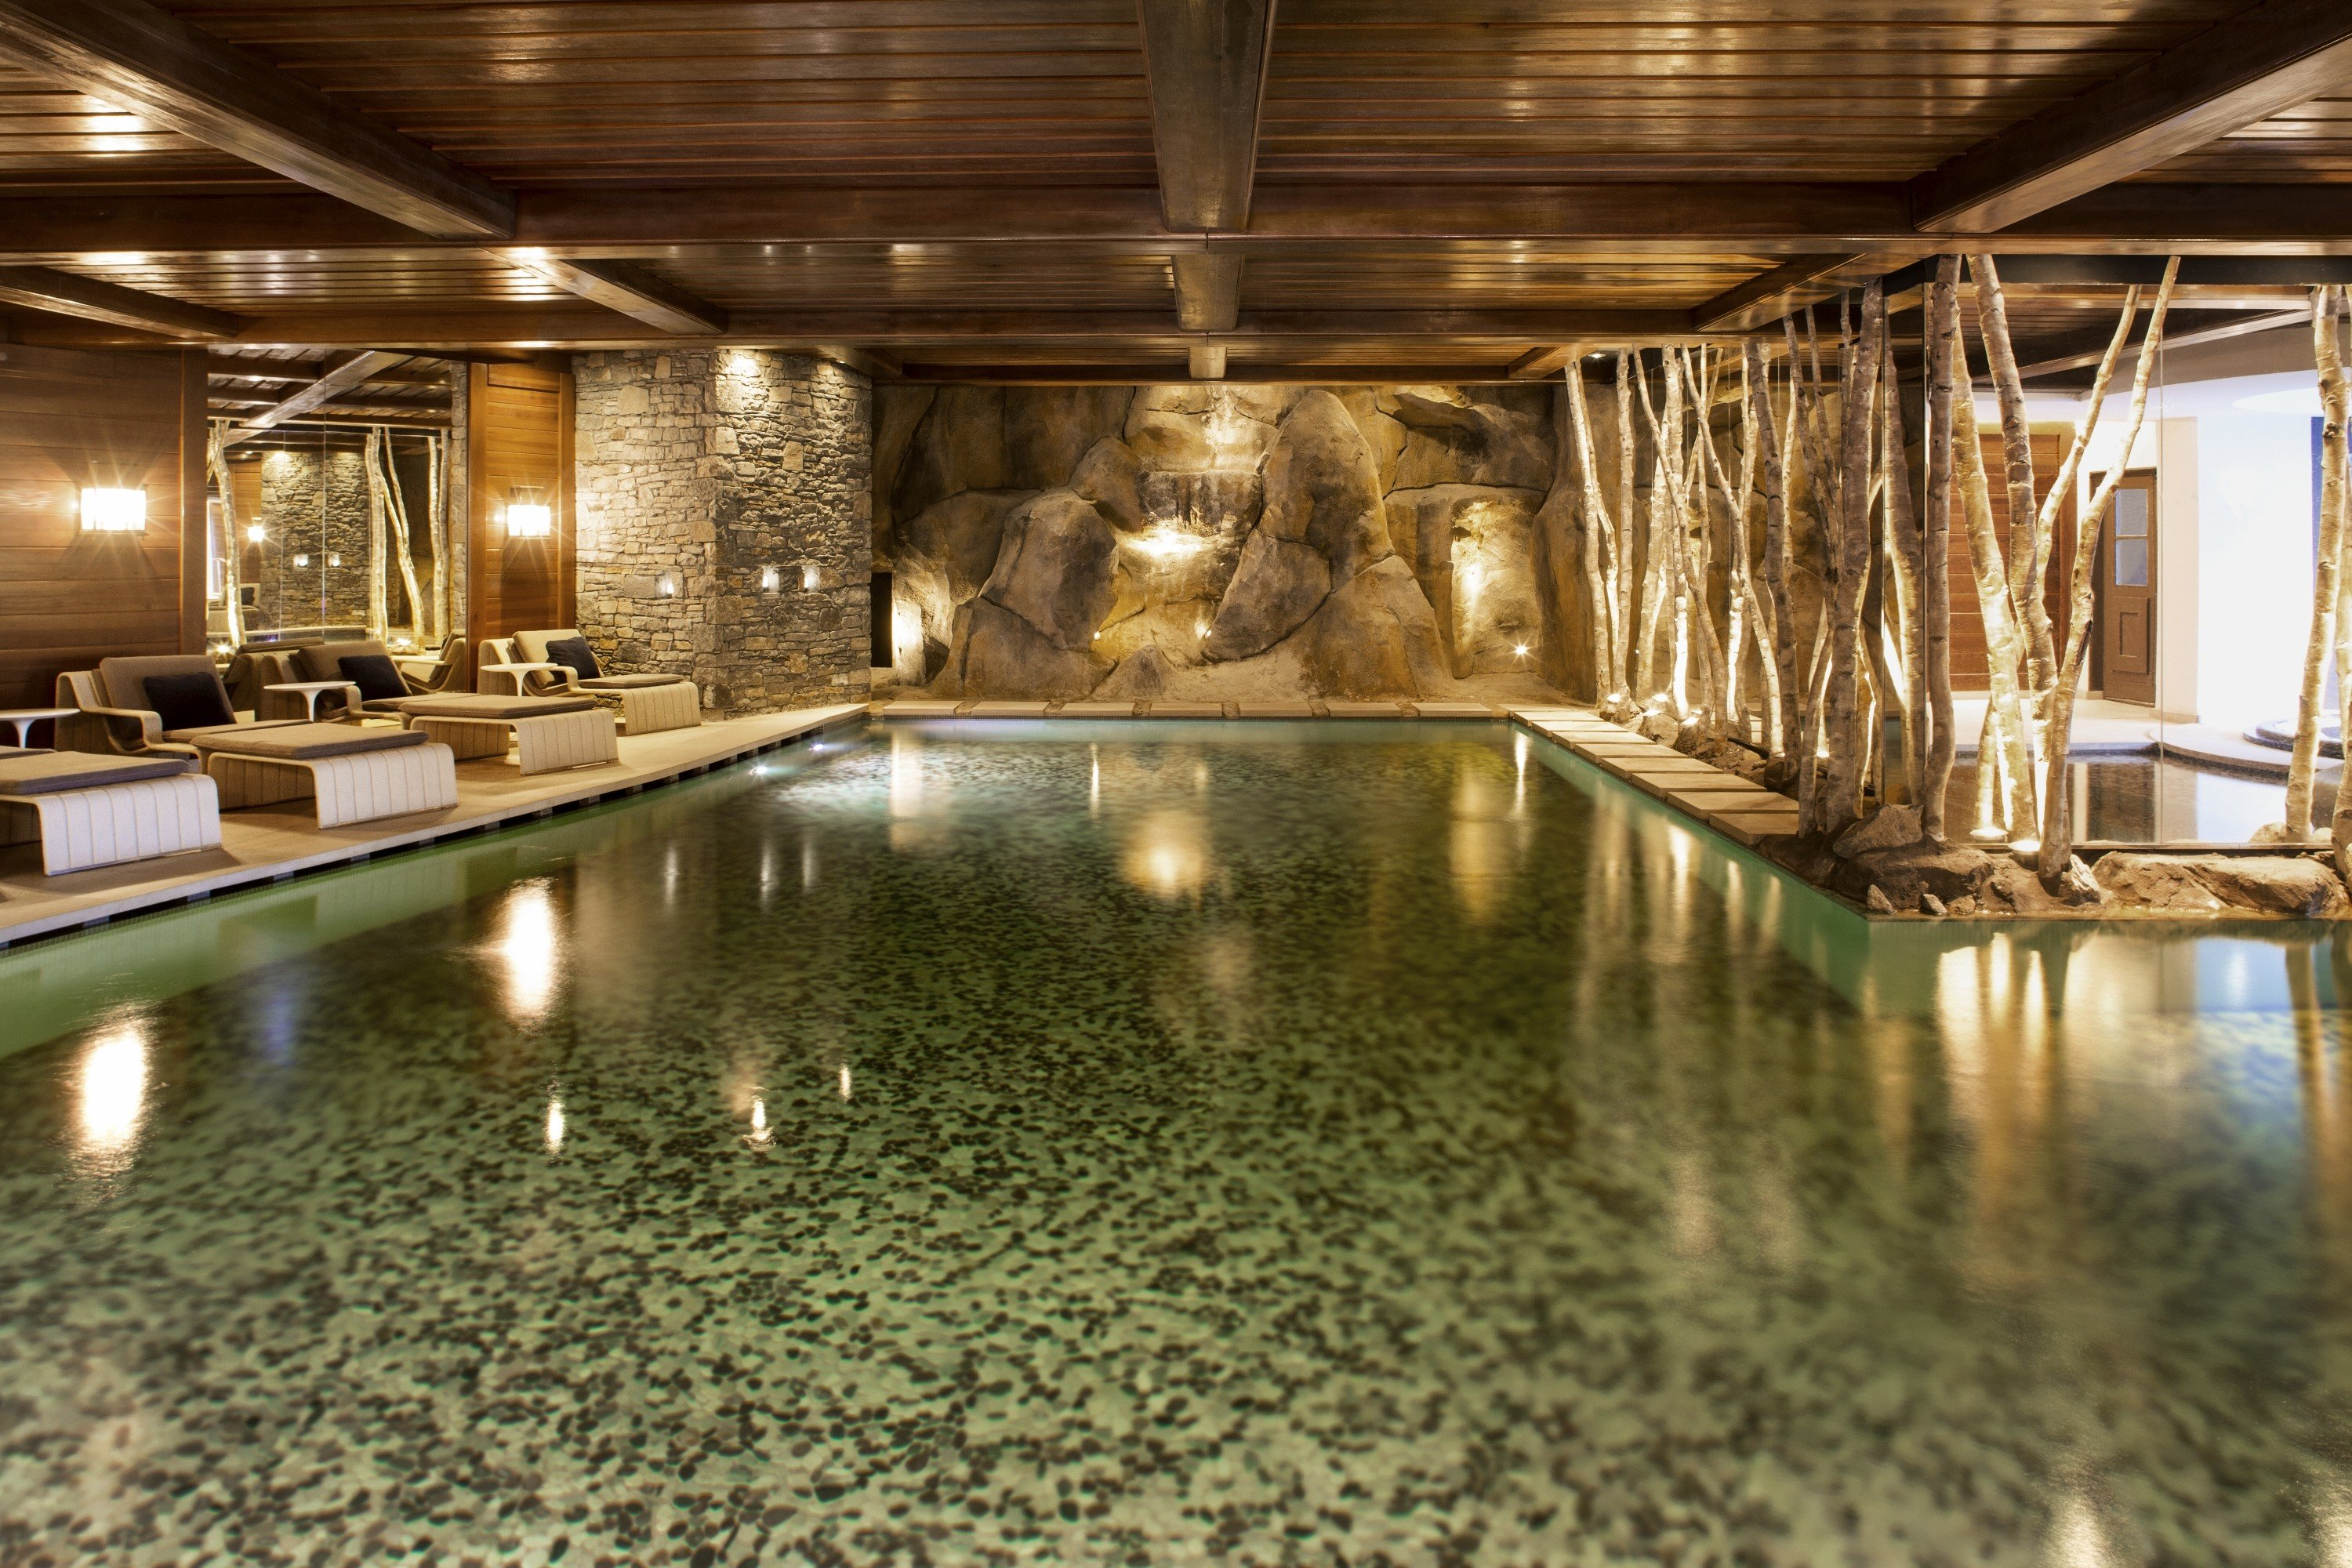 Hotels Luxury Travel Mountains + Skiing ceiling indoor floor swimming pool estate thermae lighting reflection several